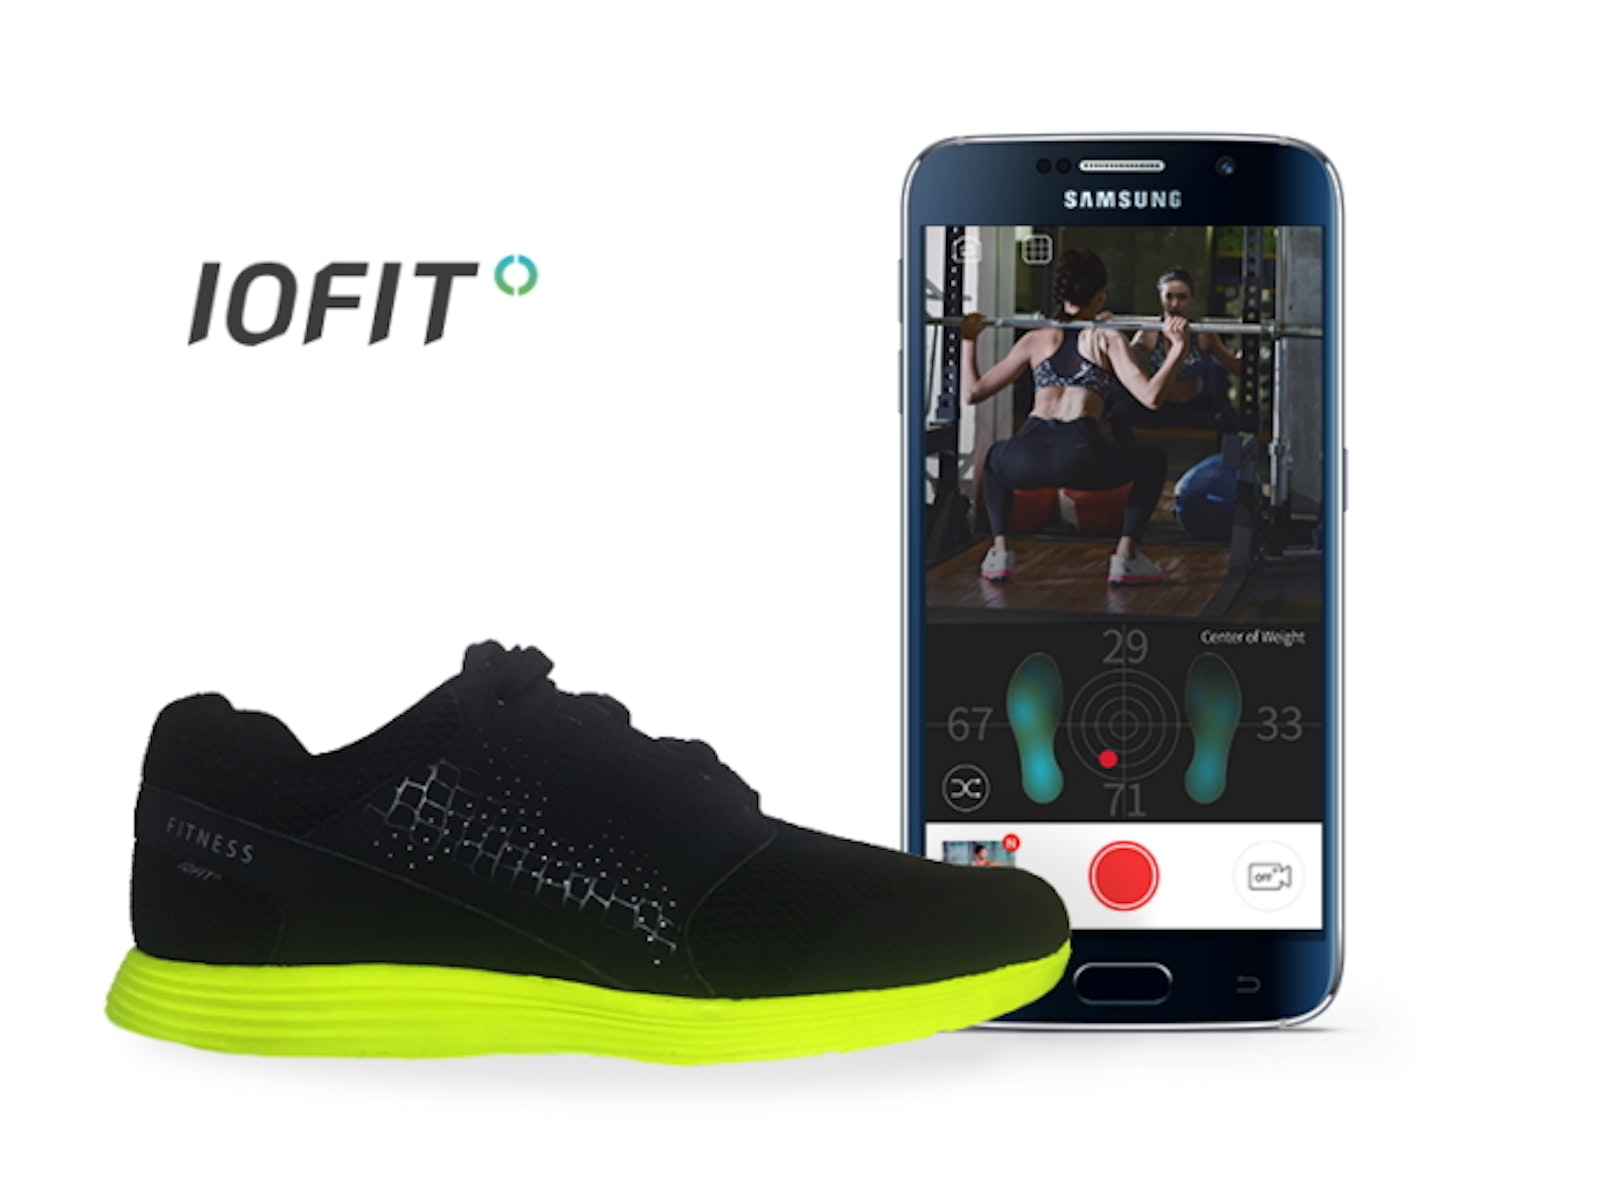 cc45161f7464 Samsung-backed IOFIT s smart shoes do more than track fitness ...